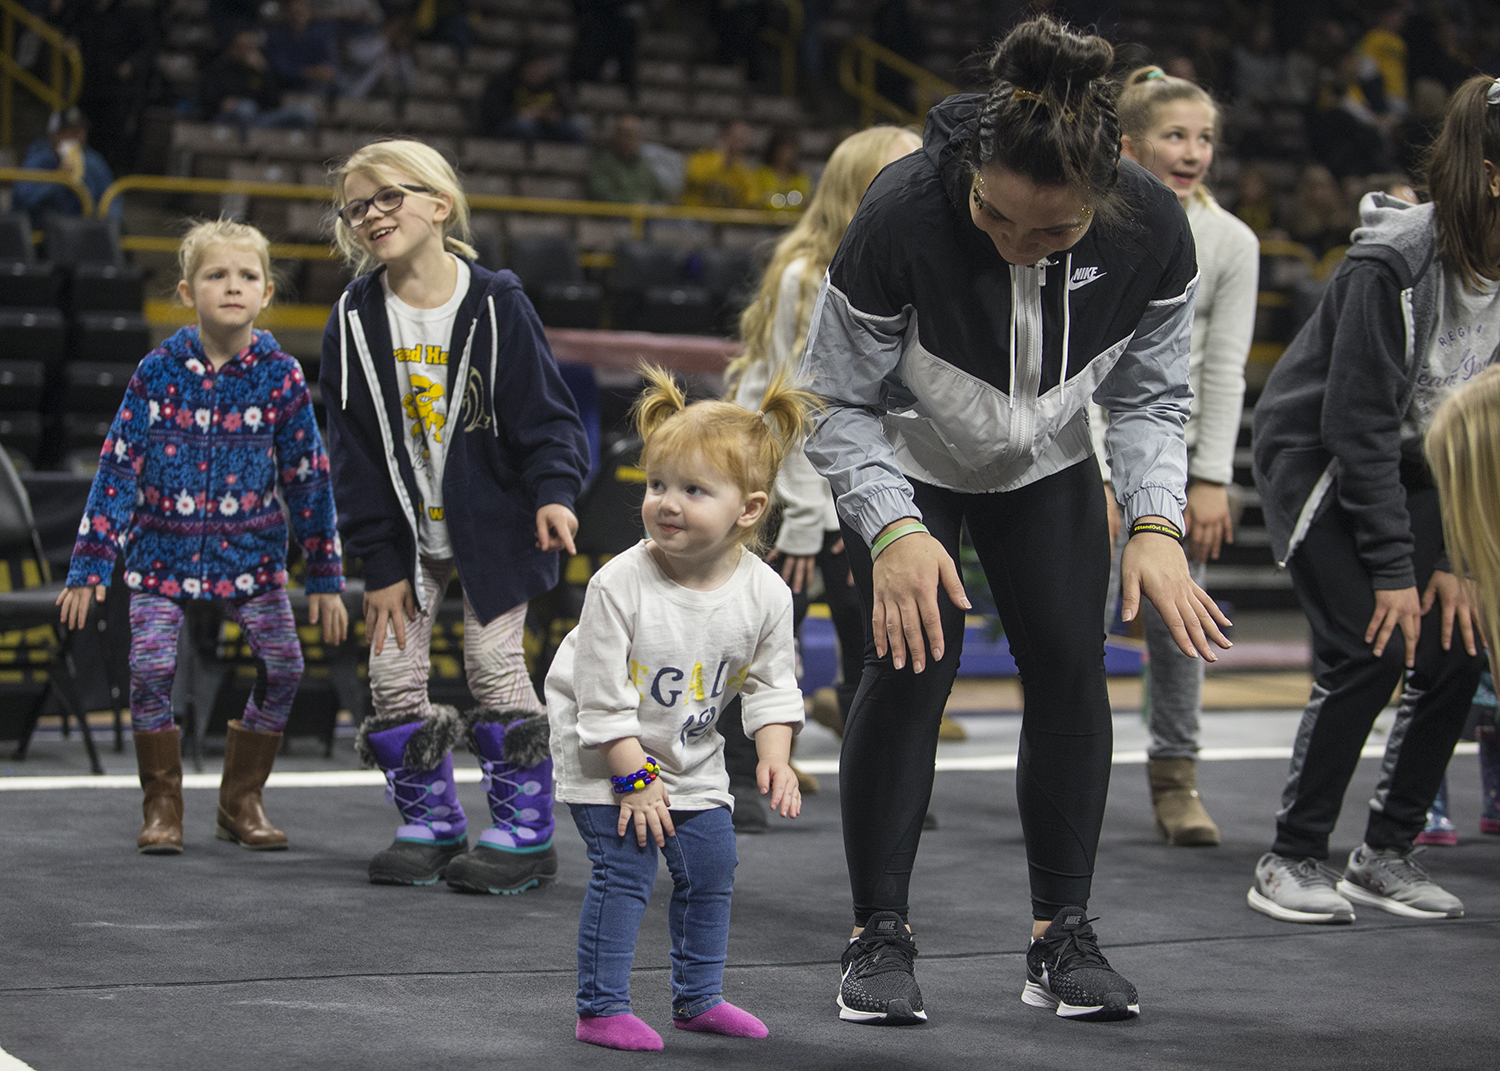 An+Iowa+gymnast+dances+with+a+young+fan+after+a+meet+against+Rutgers+on+Saturday%2C+January+26%2C+2019.+The+Hawkeyes+defeated+the+Scarlet+Knights+194.575+to+191.675.+